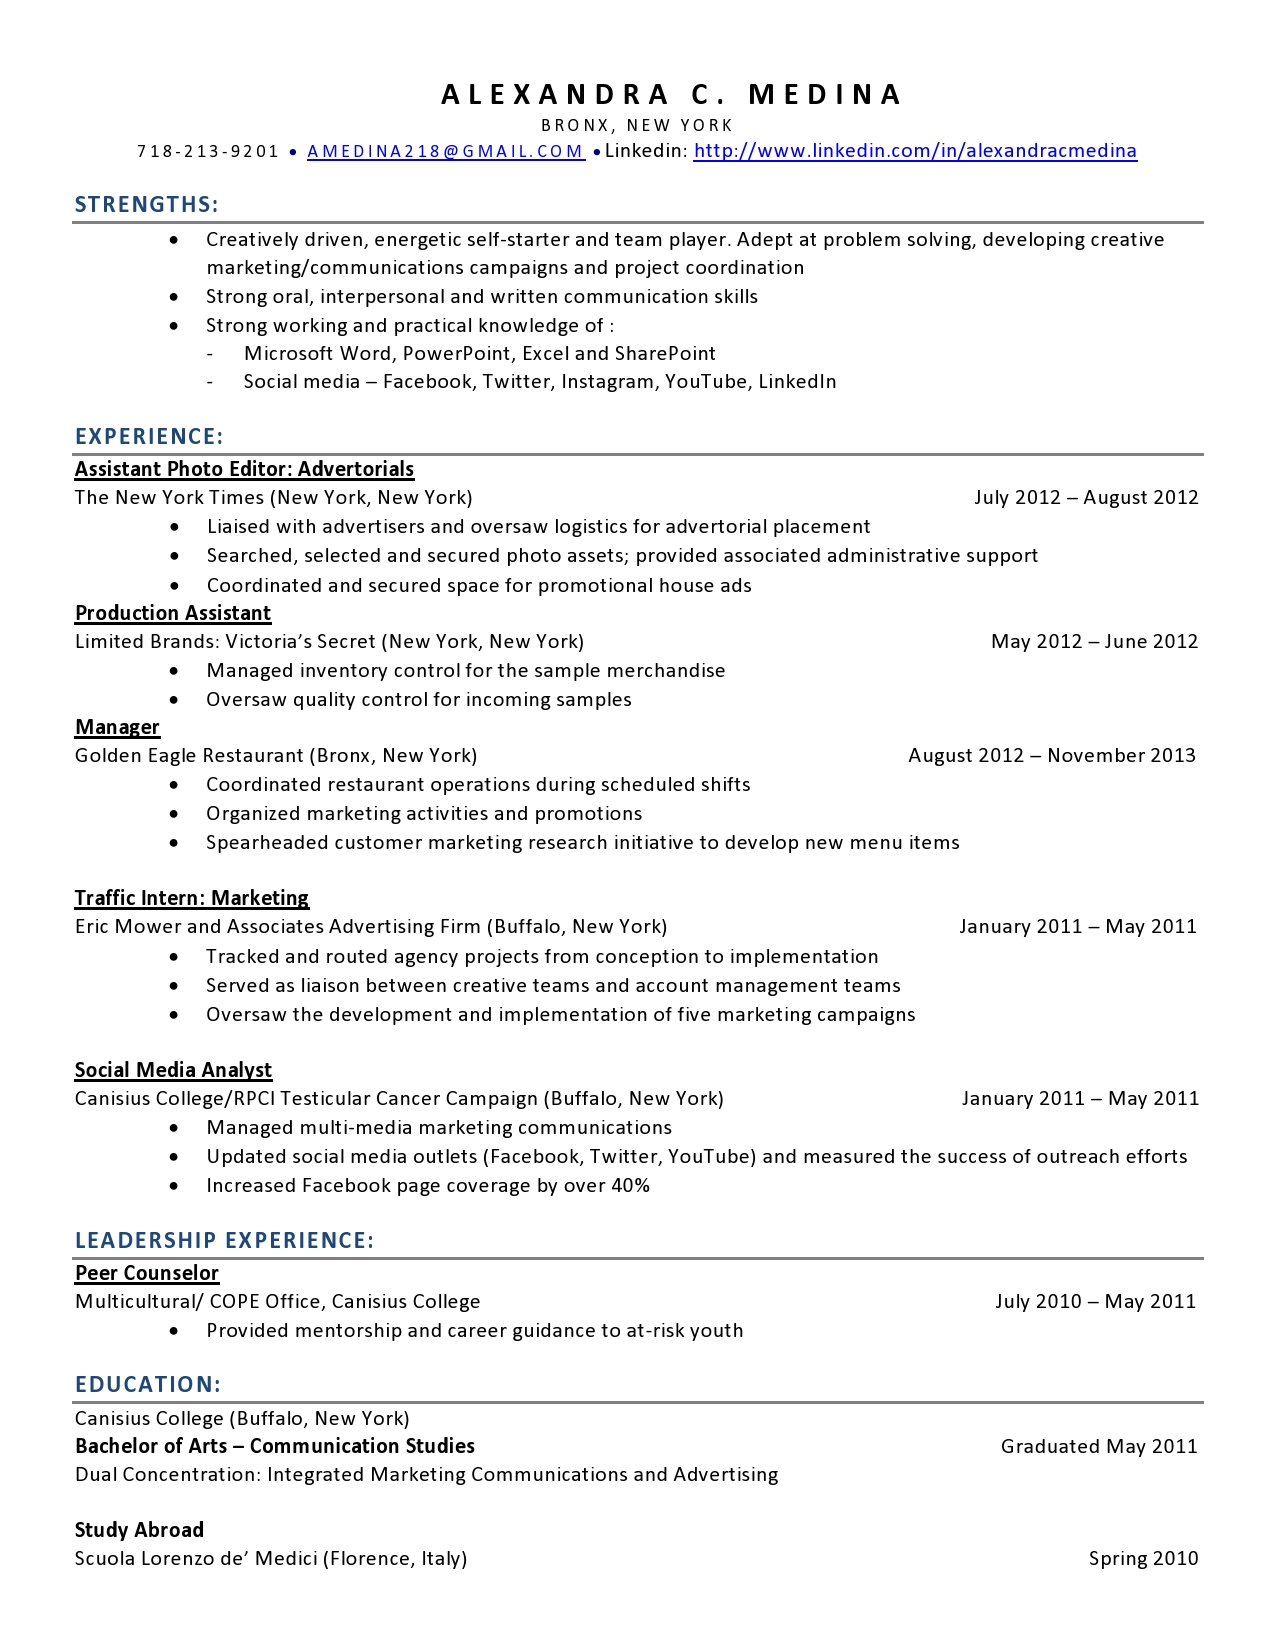 freelance writer resume samples visualcv resume samples database free sample resume cover ttu resume builder beginner. Resume Example. Resume CV Cover Letter